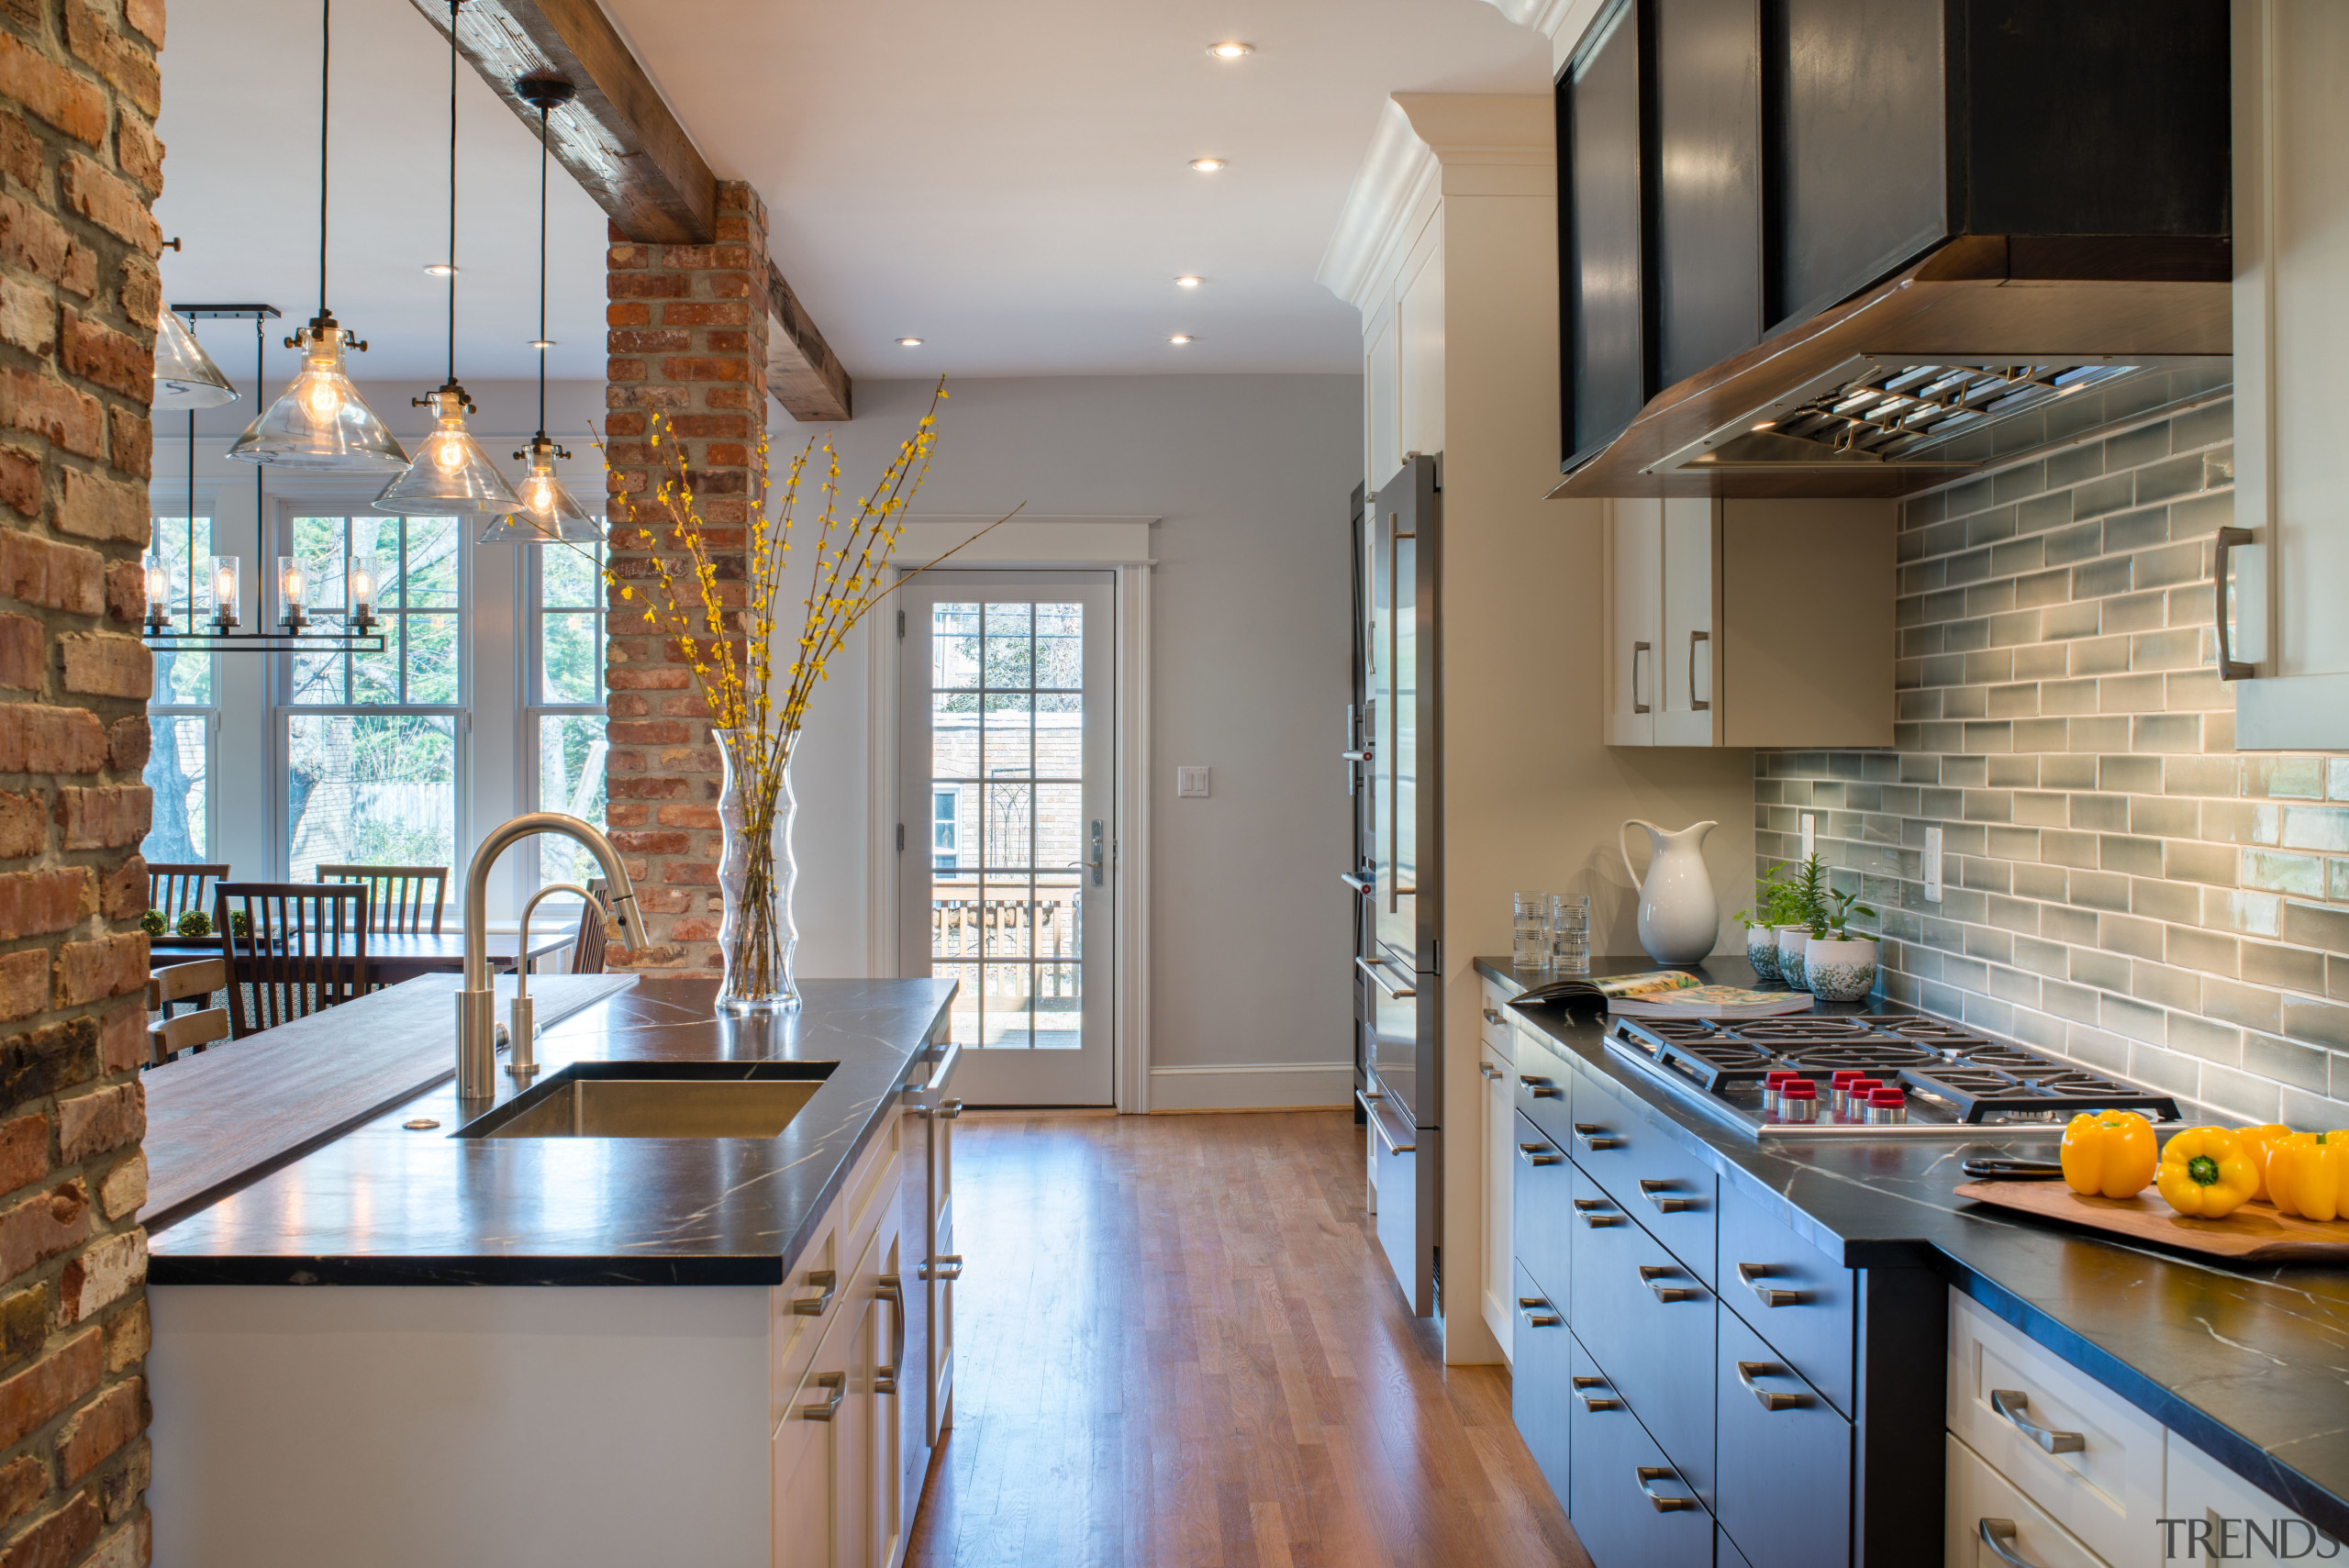 Contemporary appliances and modern treatments on some cabinetry benchtop, home, interior design, kitchen, appliances, timber floor, tap